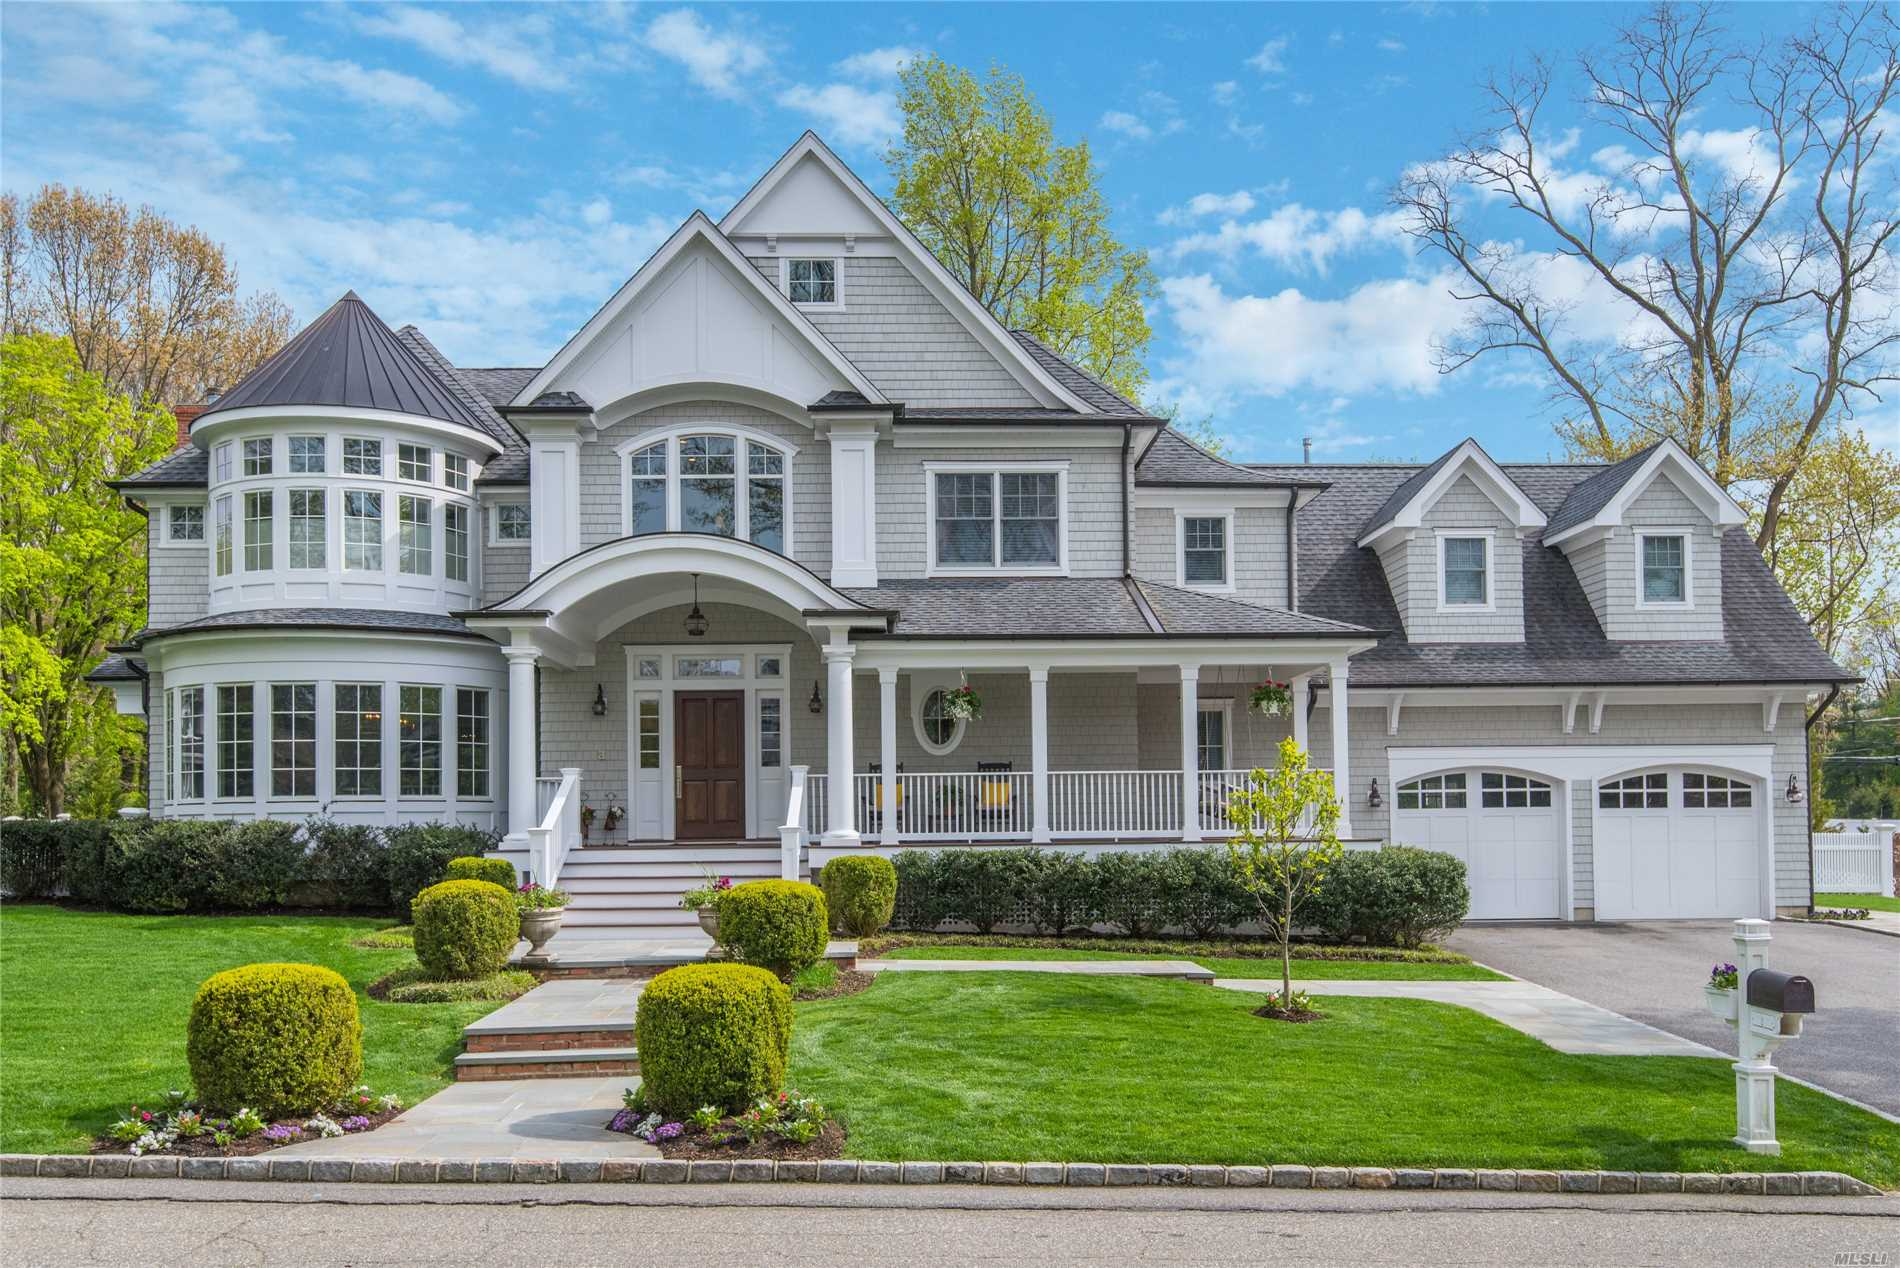 This Architectural Gem Is Now Available In The CSH Midland Section. This Custom Home Offers An Expansive Two Story Foyer W/Coastal Chic Design. Formal Dining Rm Showcases Beautiful Barrel Shaped Wall of Windows & Elegant Ceiling Detail. Family Rm Features Gas Frpl, Wall of Windows & French Doors Overlooking Covered Bluestone Patio, Landscaped Yard & IG Heated Pool. Designer Chef Kitchen, Mudroom, Laundry Rm, Back Staircase, Gorgeous Master En-Suite, Too Much To List..A Truly Exceptional Home!